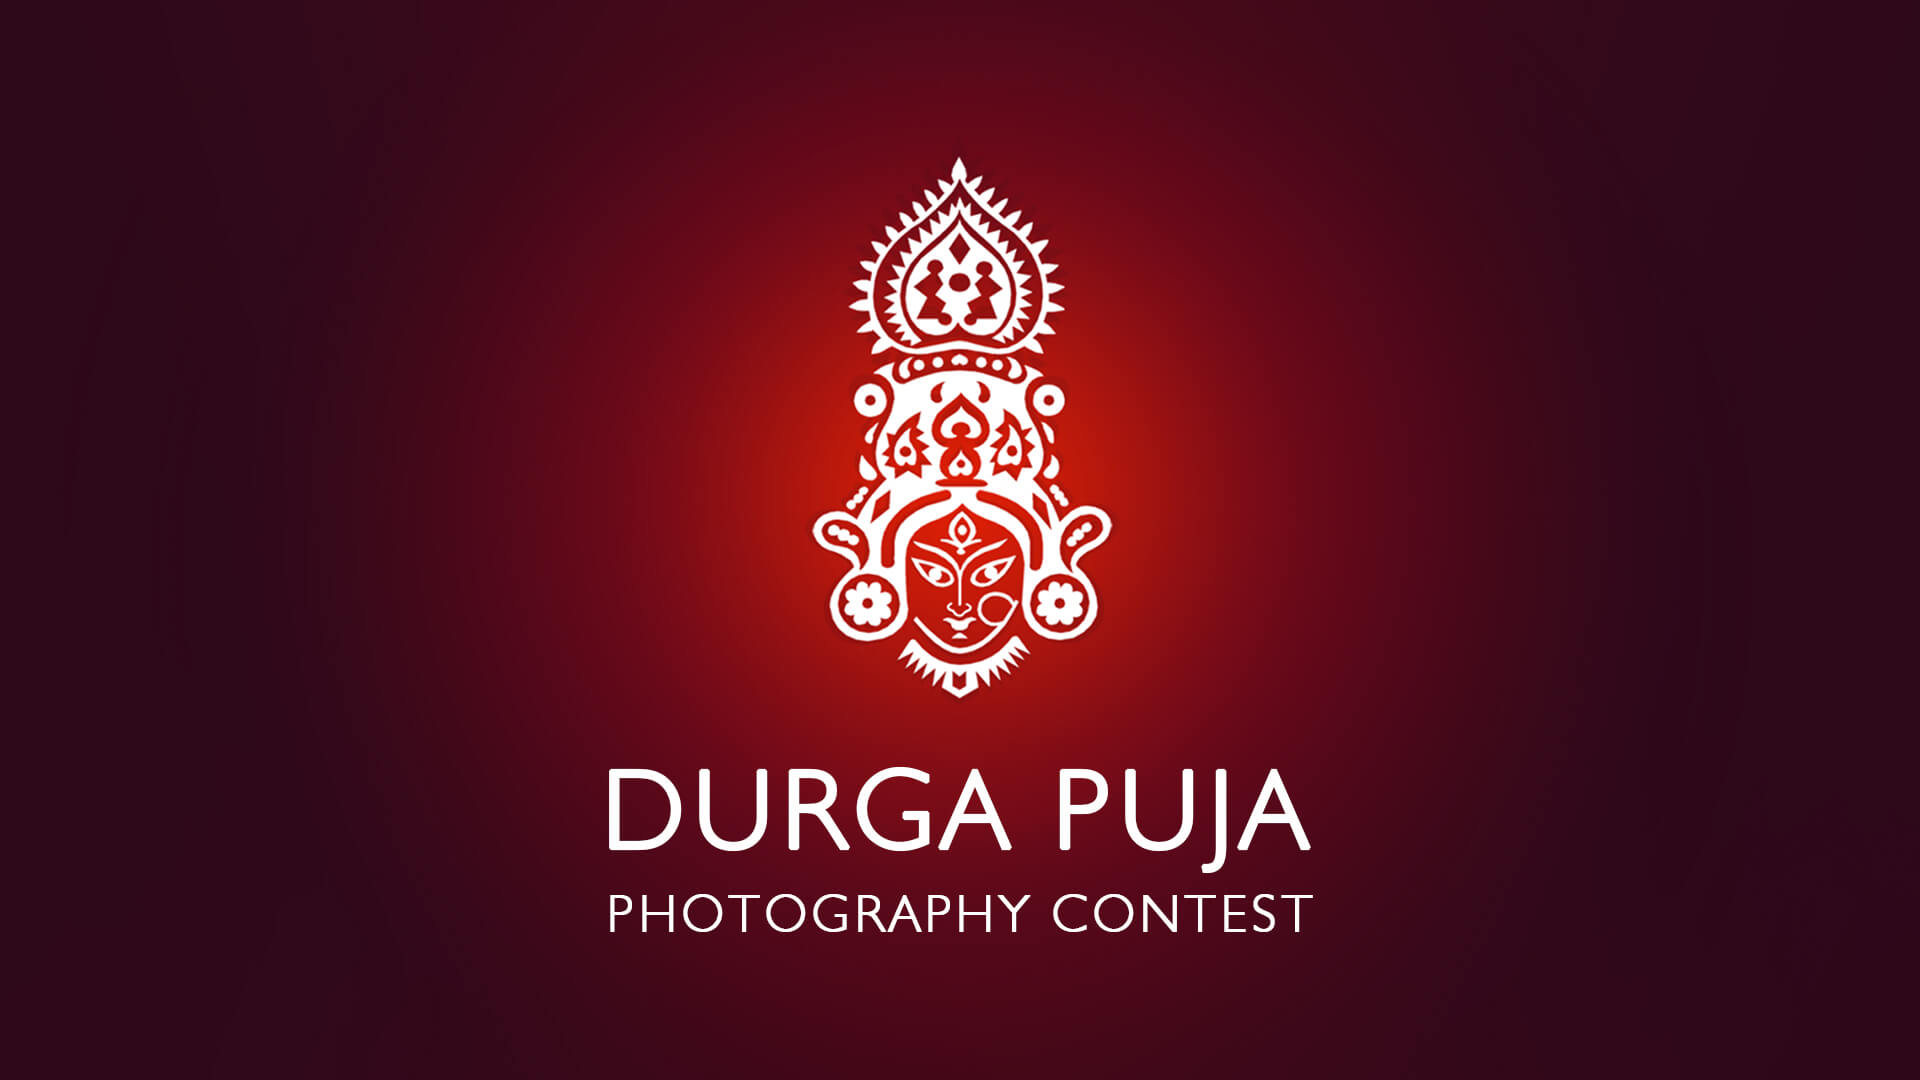 Durga Puja Photography Contest